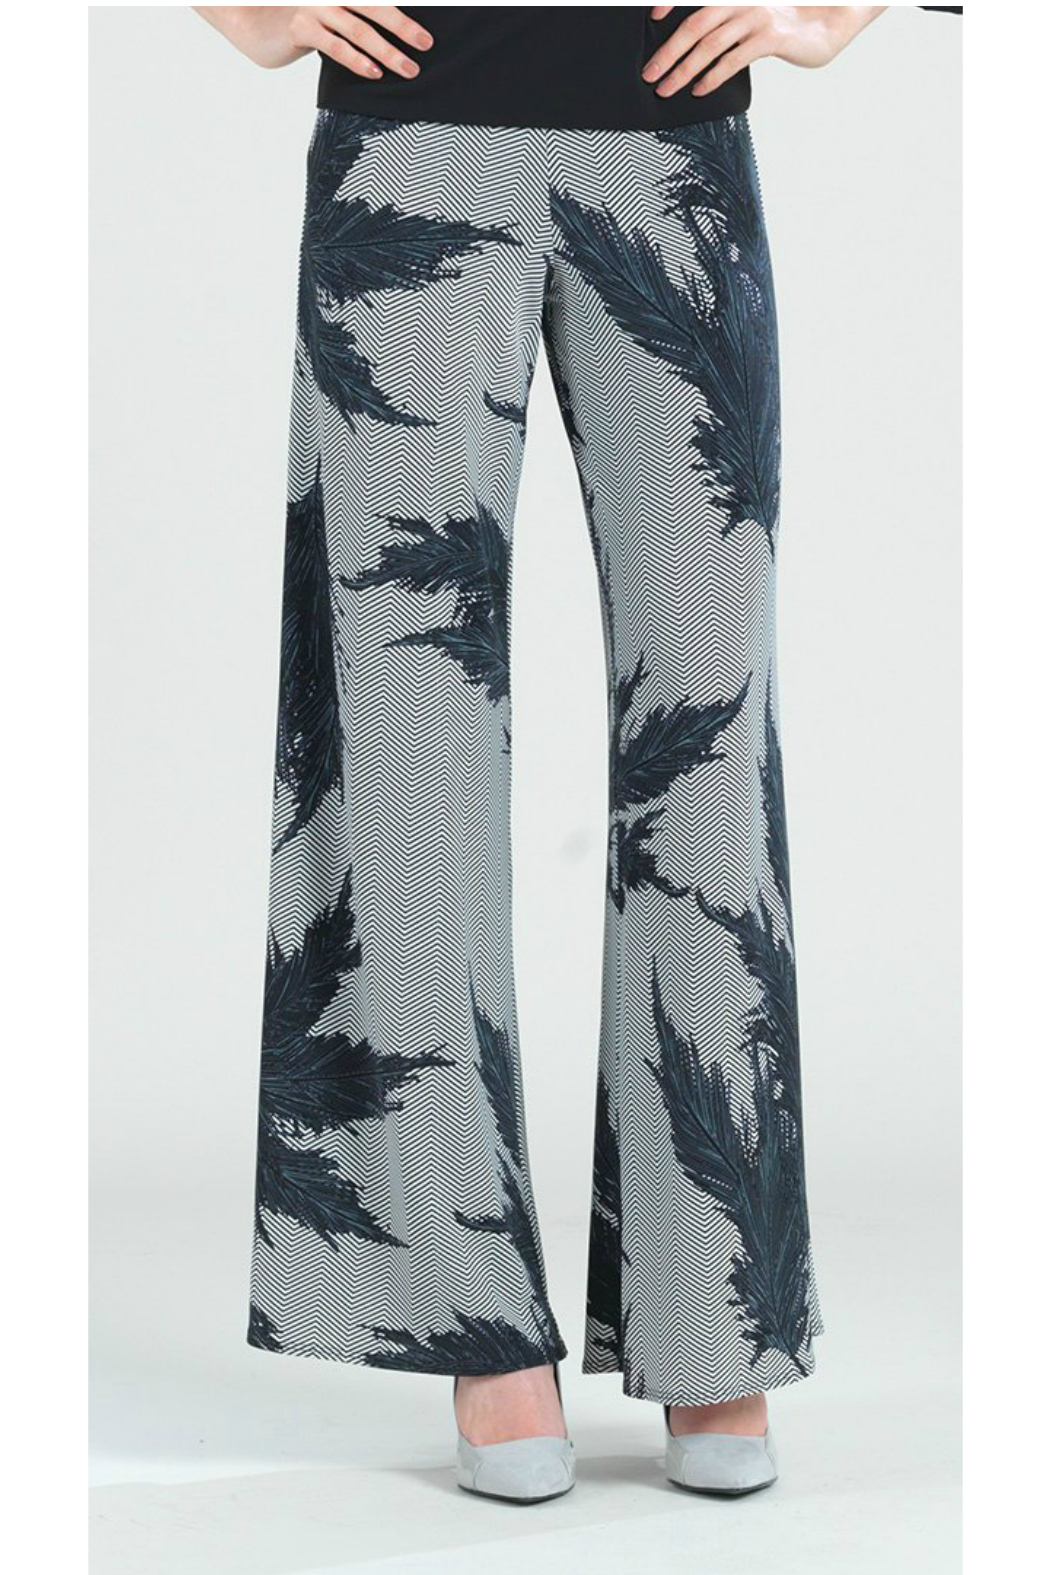 Clara Sunwoo Feather print palazzo pant - Main Image